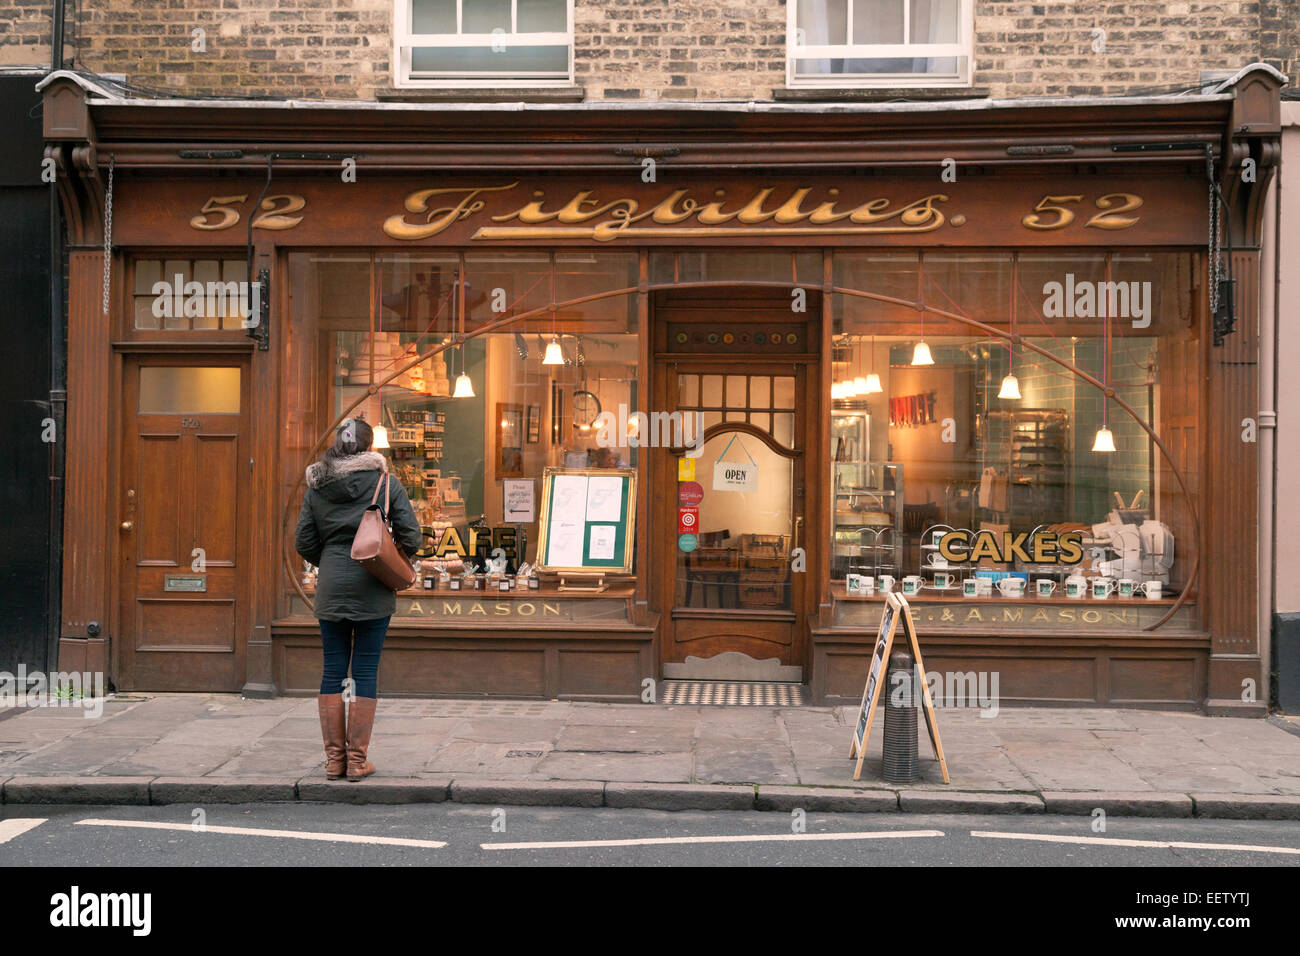 A young woman outside Fitzbillies cake shop or cafe, Cambridge England UK Stock Photo